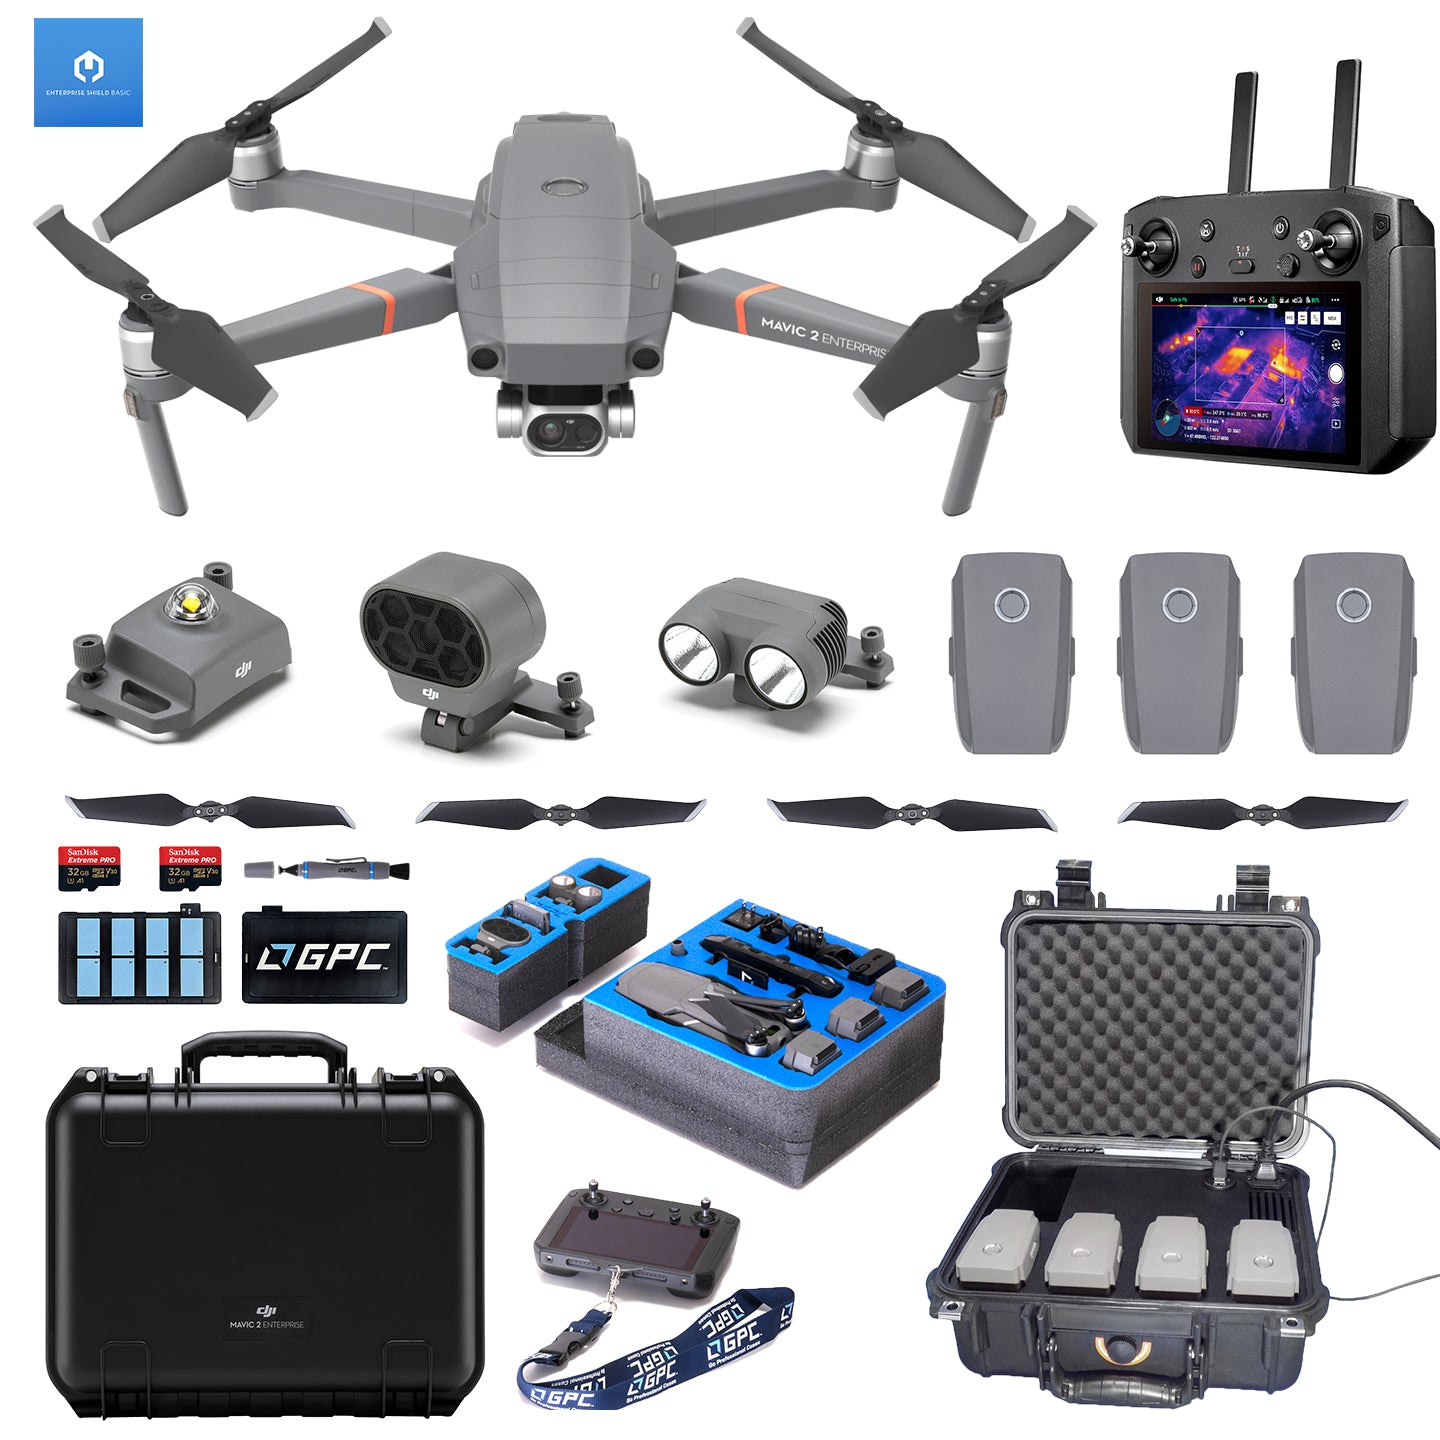 DJI Mavic 2 Enterprise Dual w/Smart Controller QuickTac Bundle